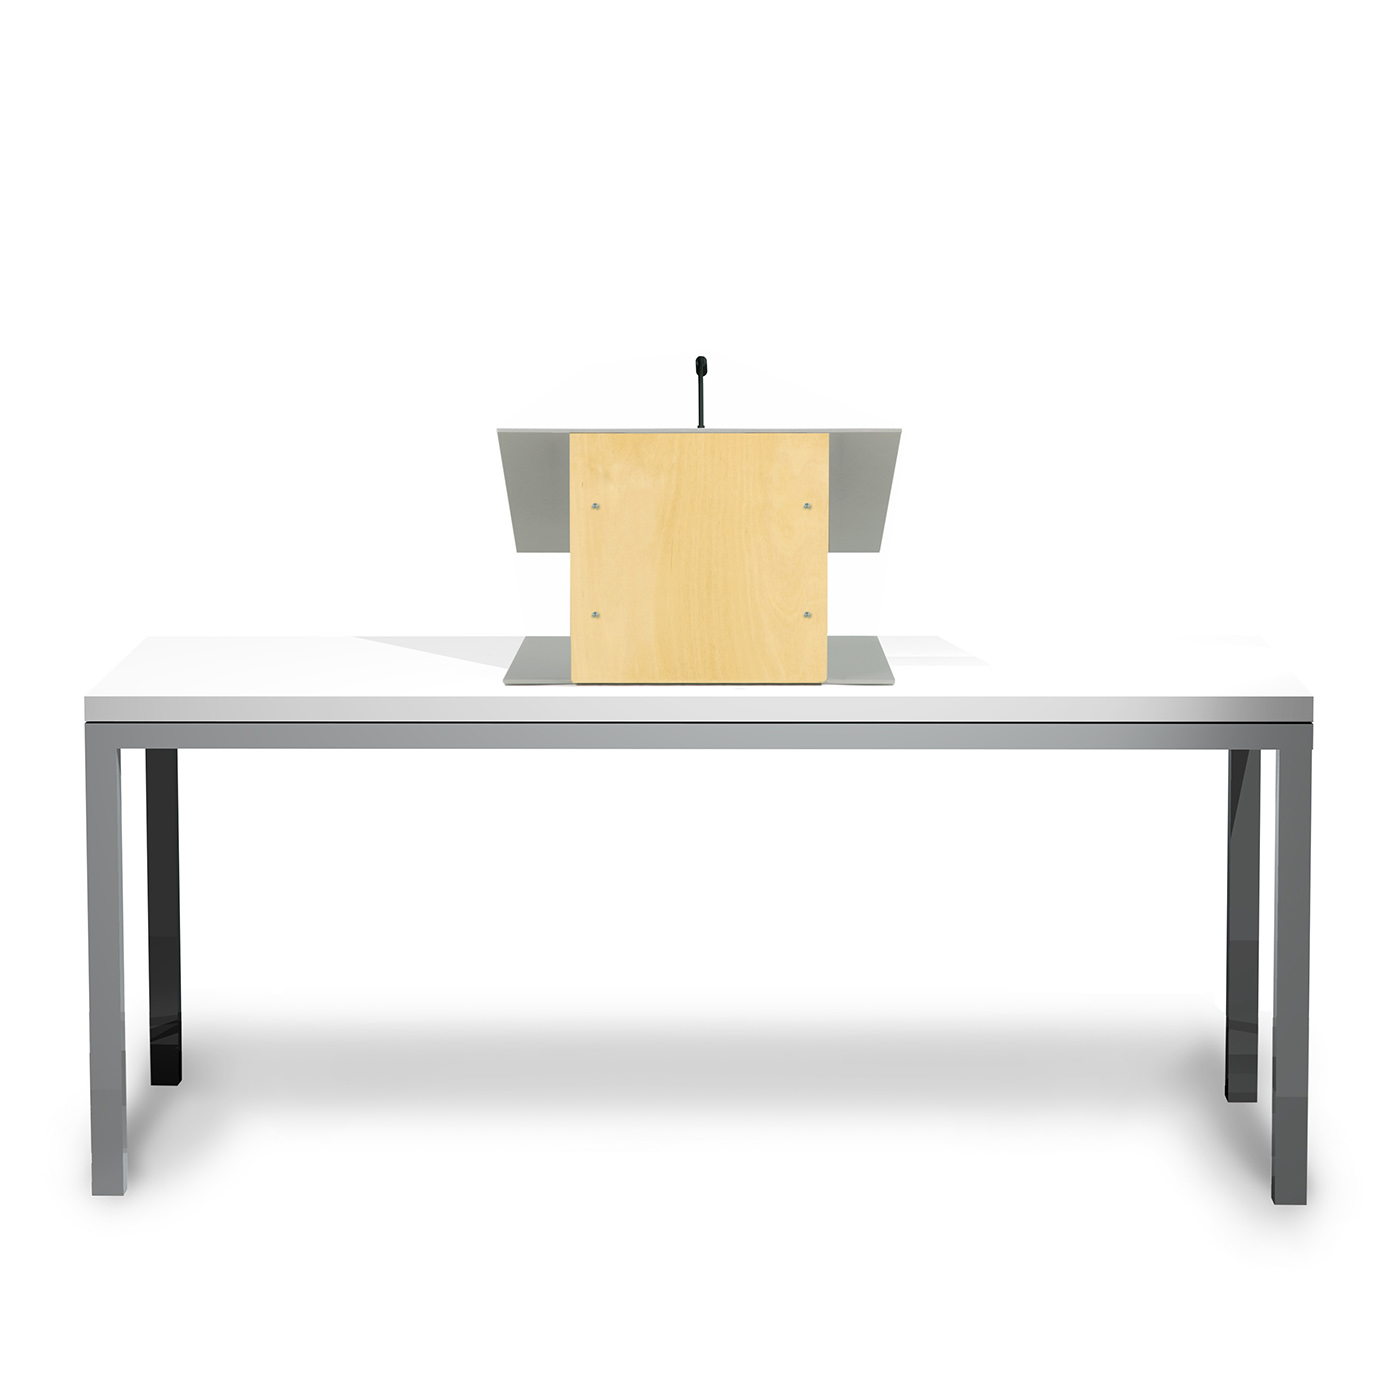 Urbann_K9_front table white